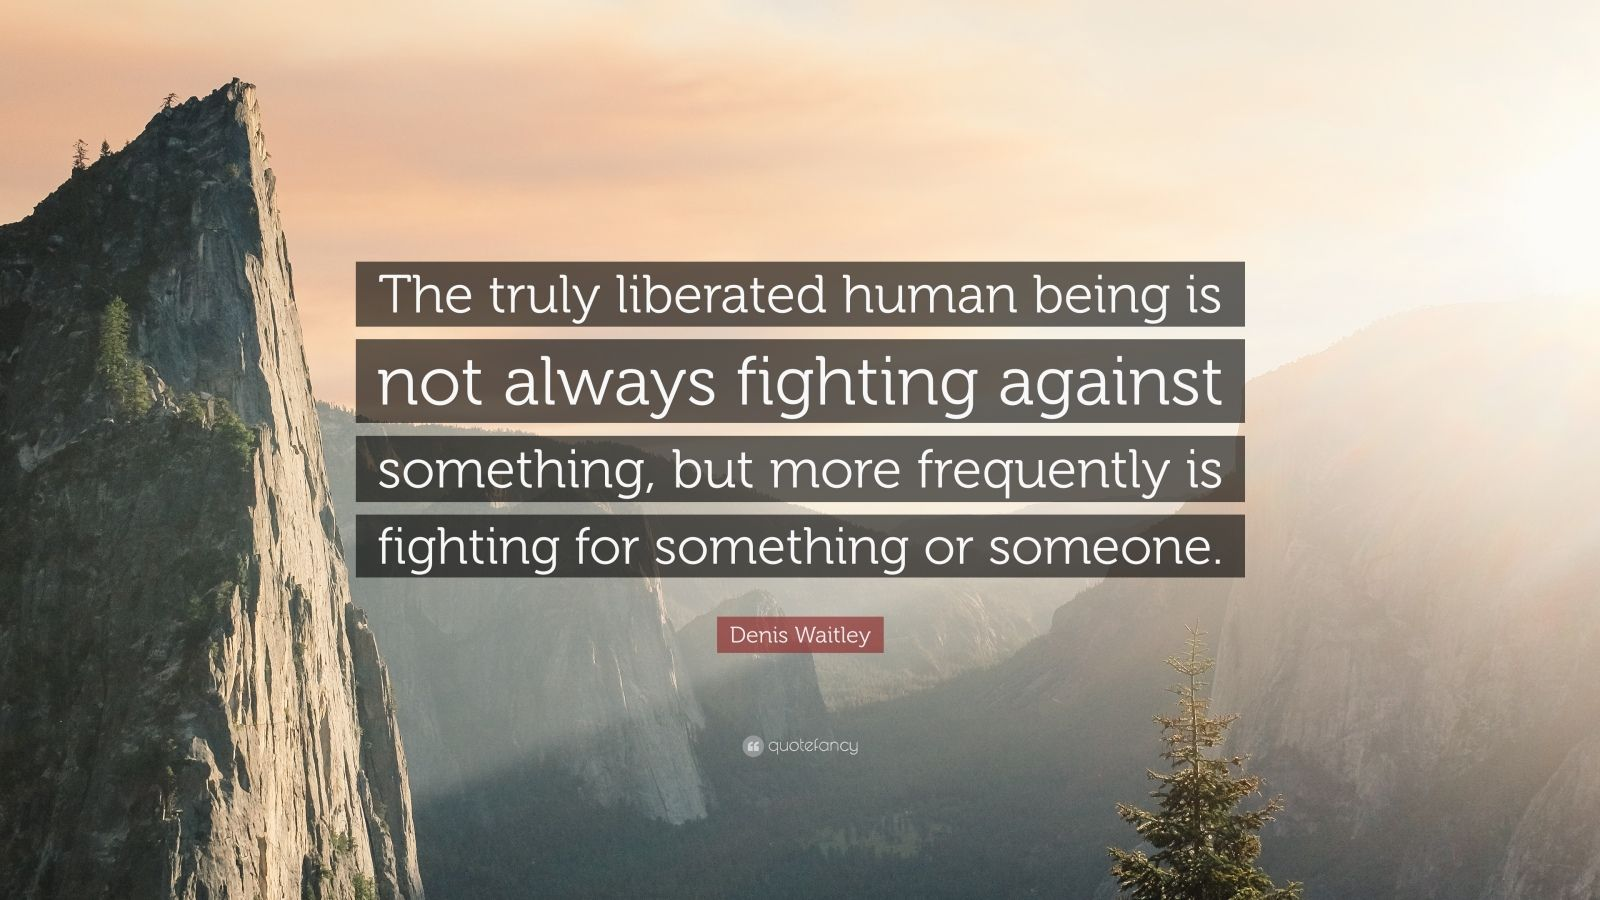 """Denis Waitley Quote: """"The truly liberated human being is not always fighting against something, but more frequently is fighting for something or someone."""""""